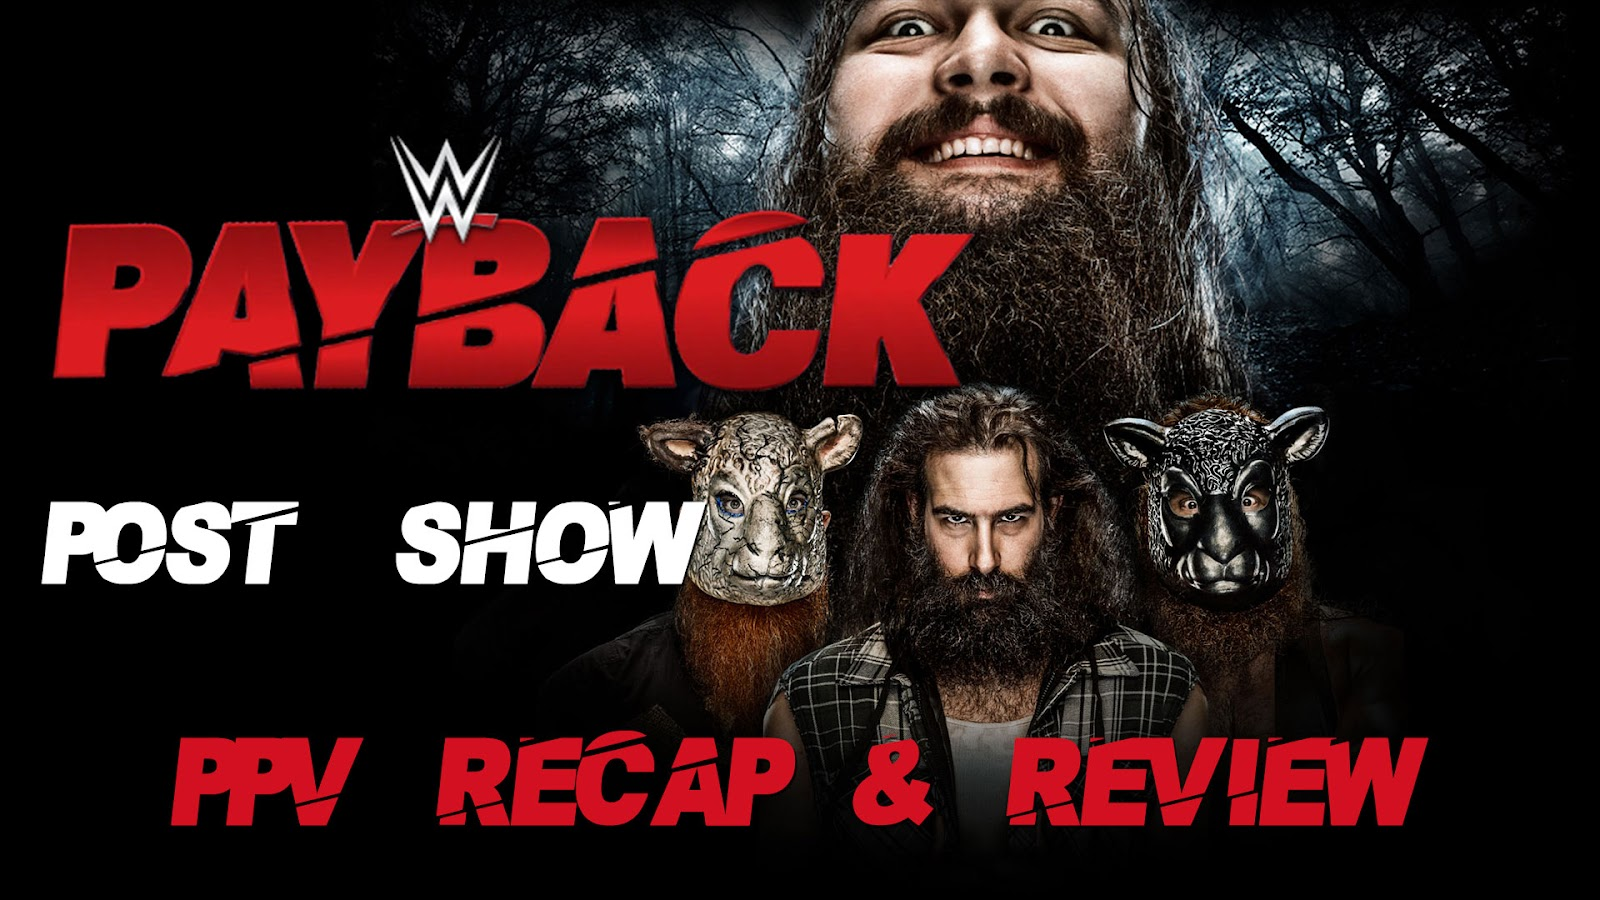 WWE Payback 2016 Recap and Review Podcast